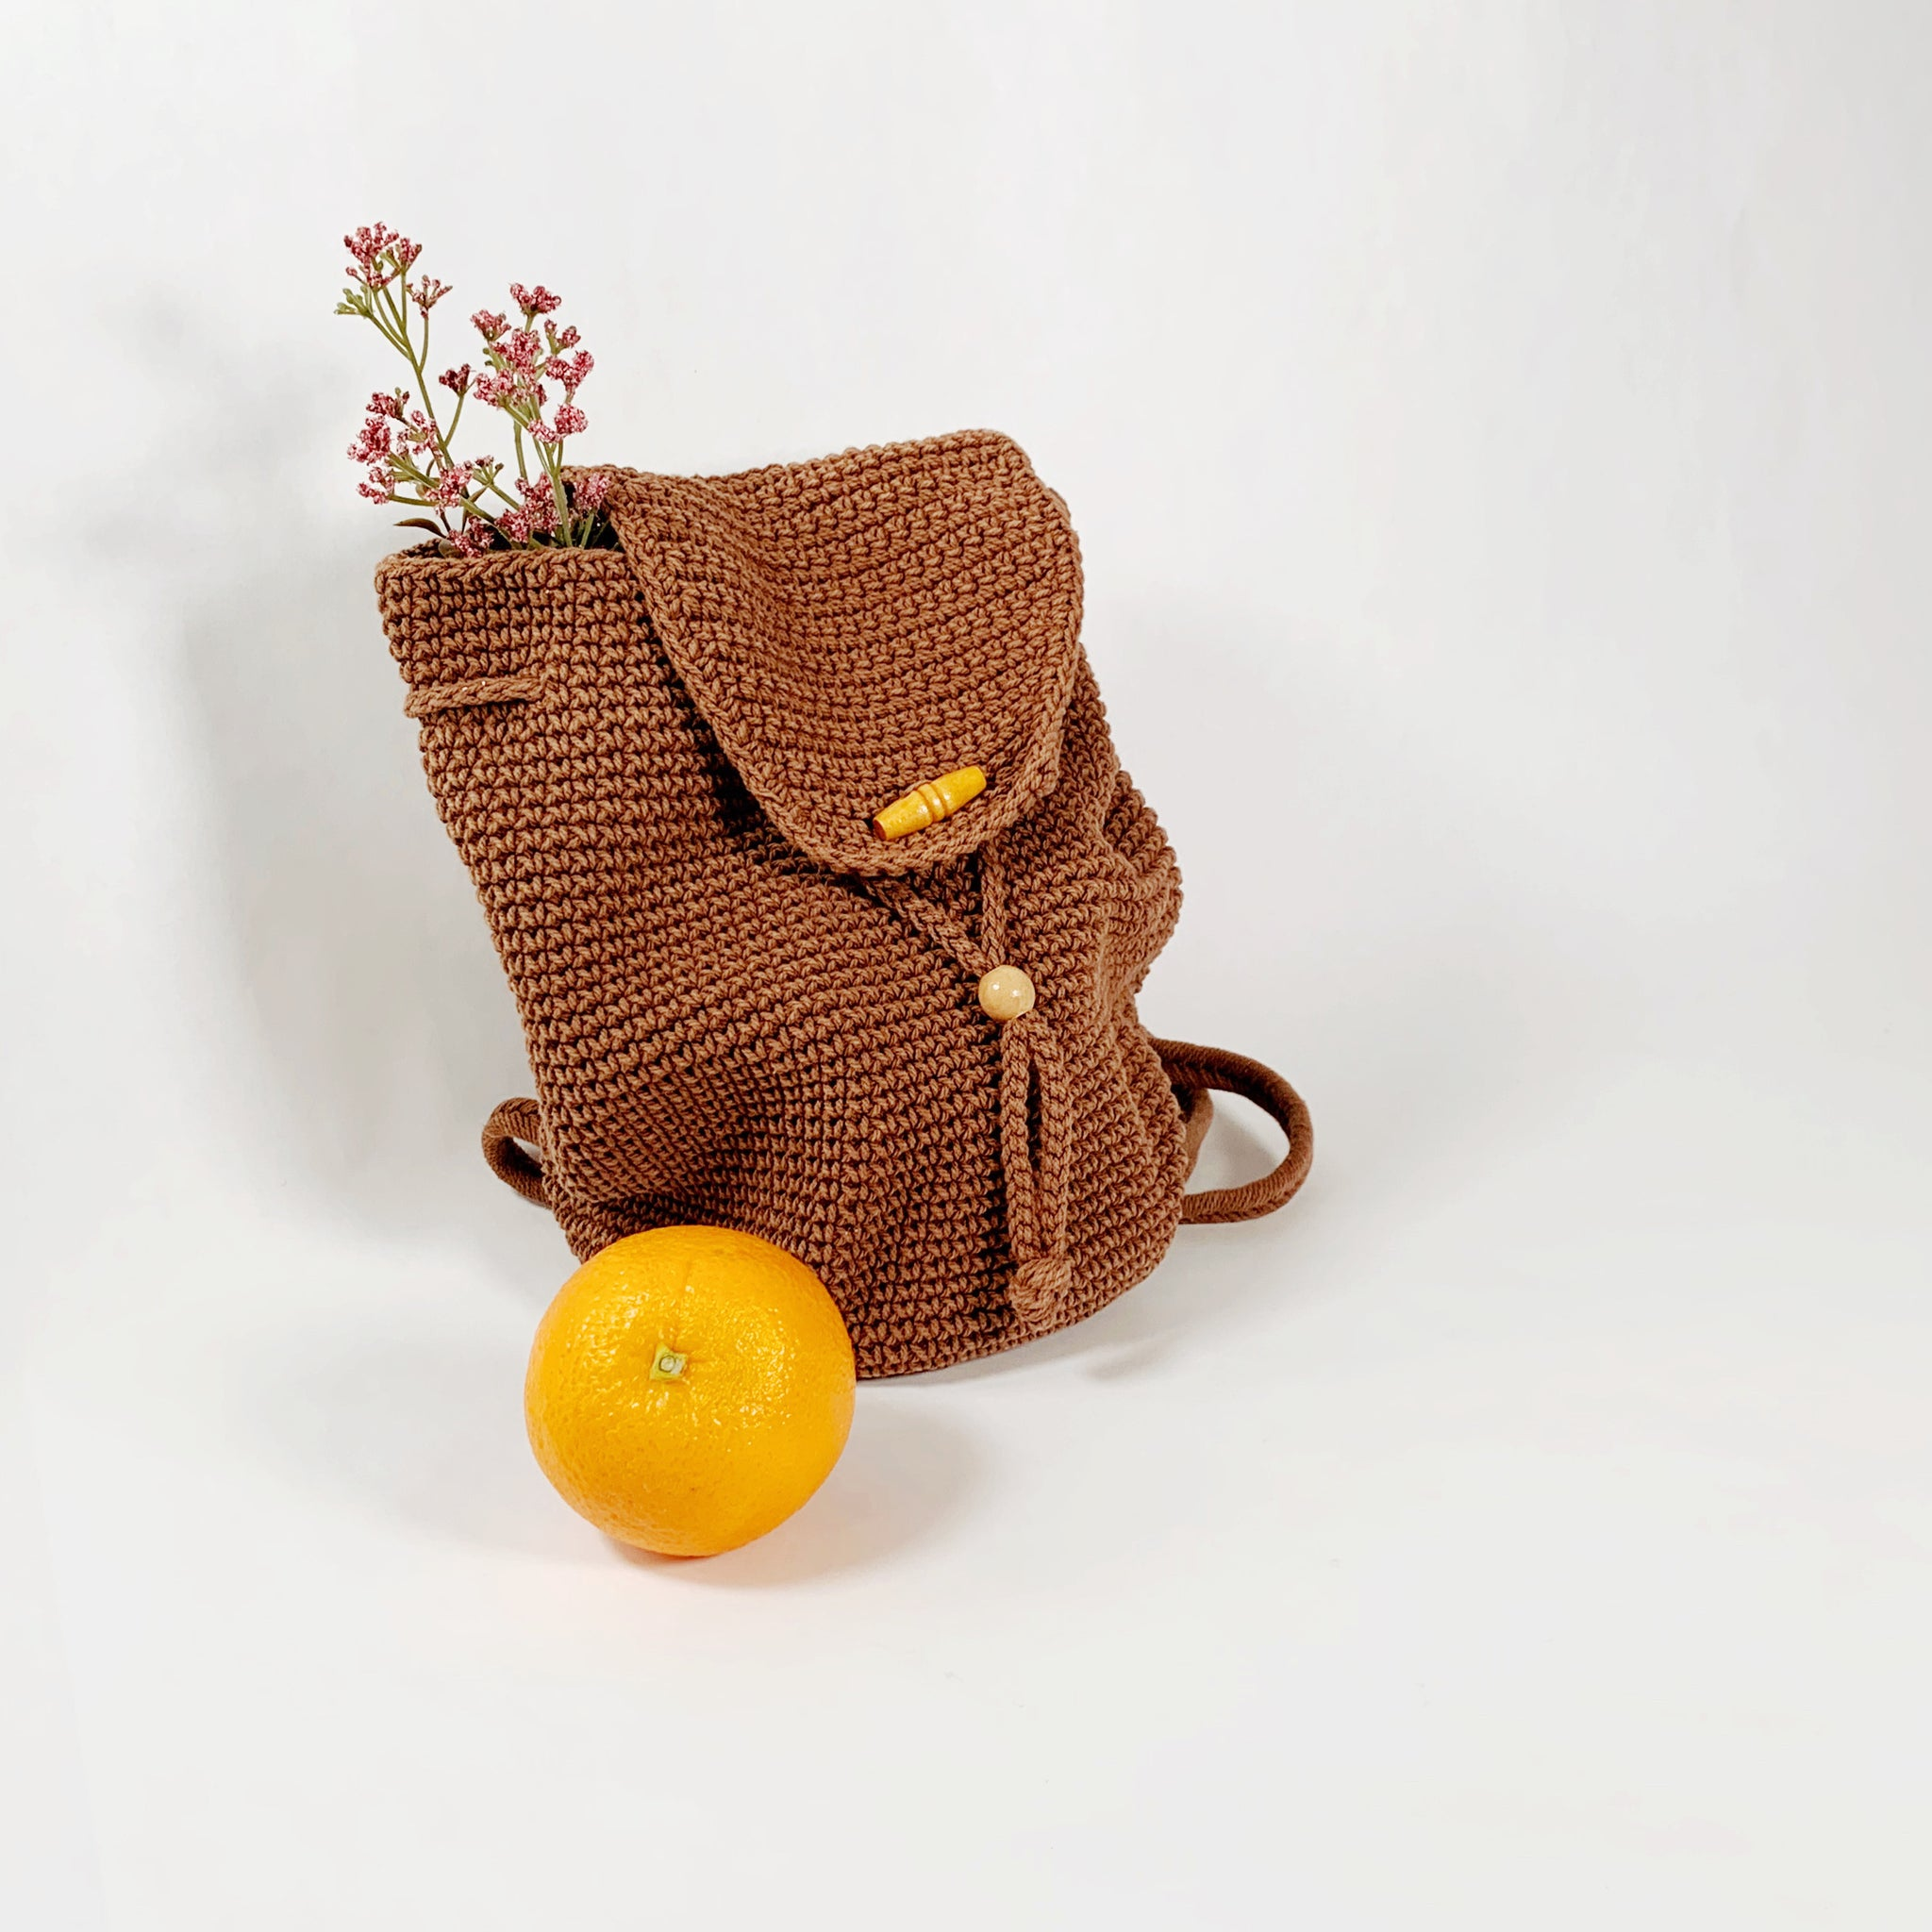 Woven Drawstring Backpack - New Origin Shop